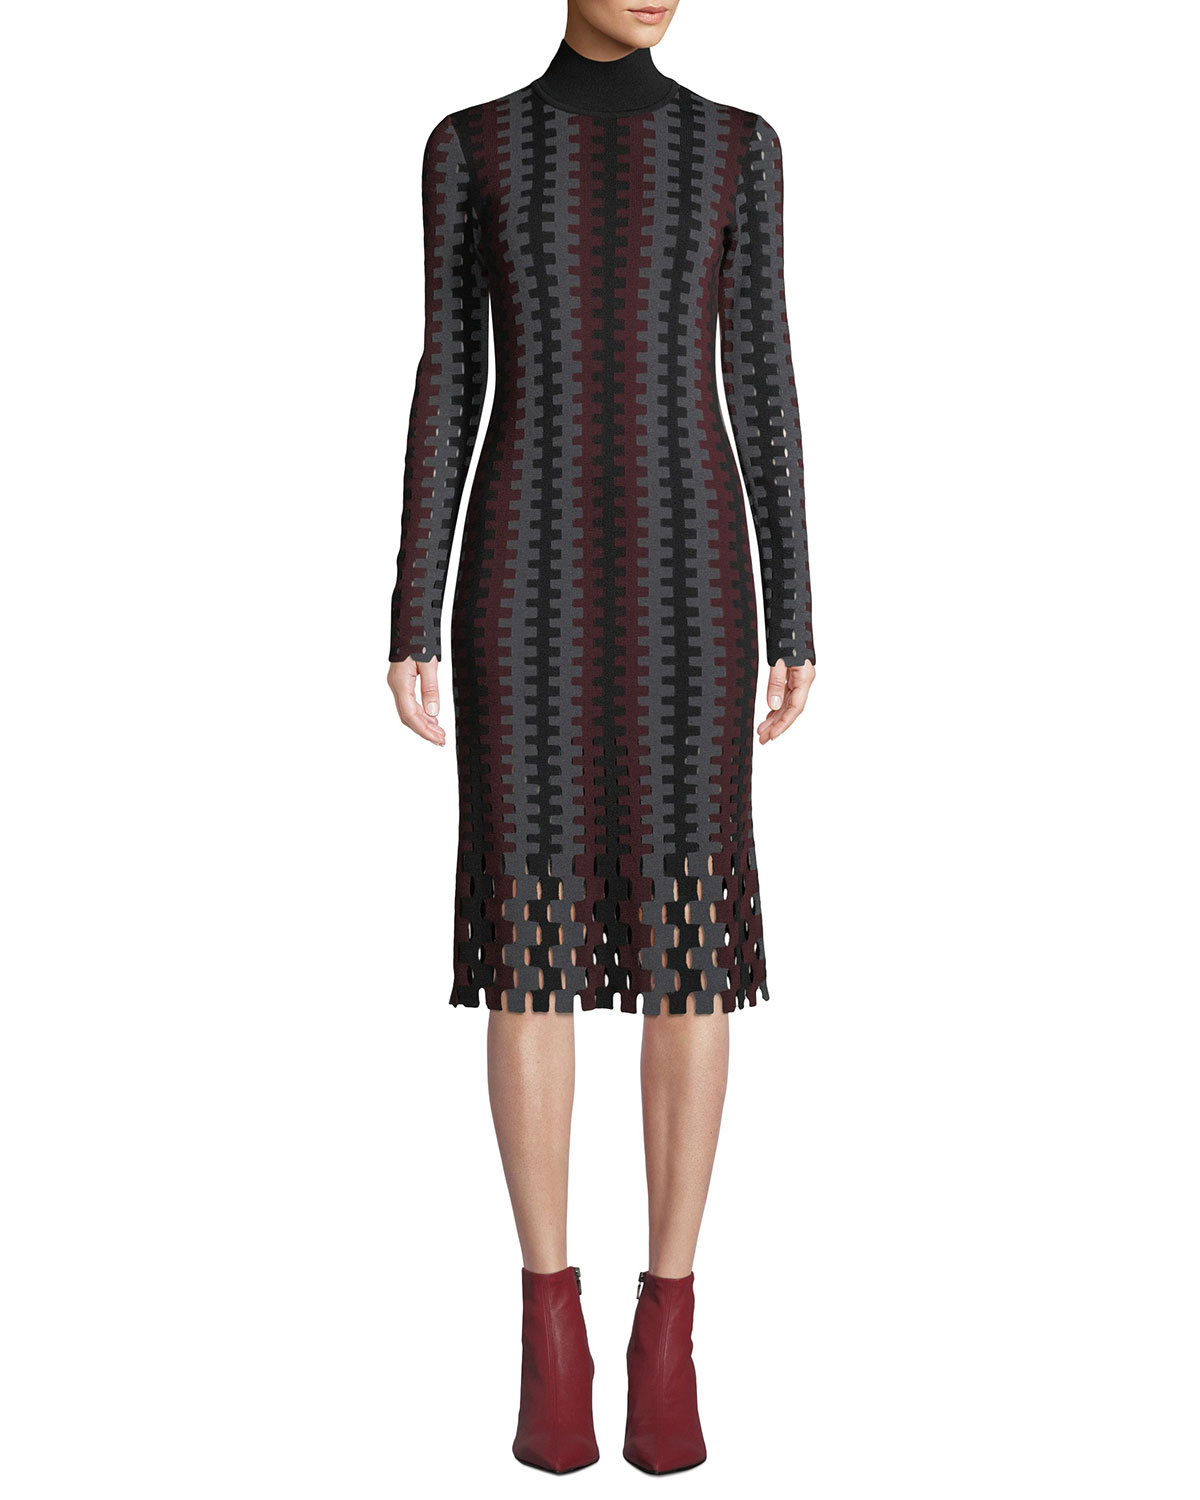 dd6bac1b97b7 Diane von FurstenbergTurtleneck Long-Sleeve Knit Intarsia Midi Dress